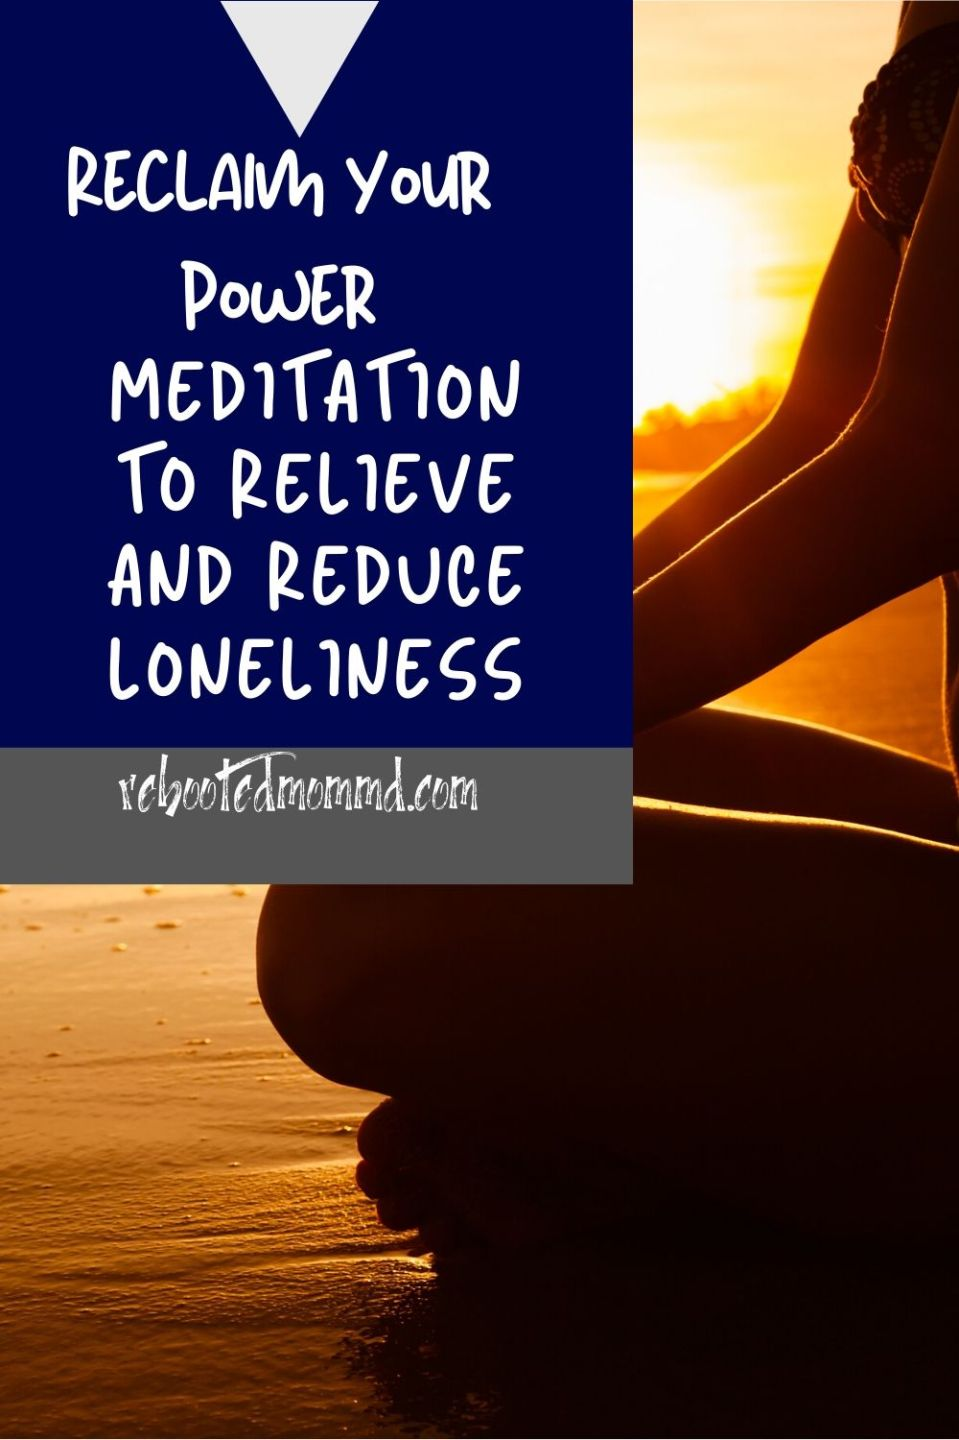 How to Use Meditation to Relieve and Decrease Loneliness